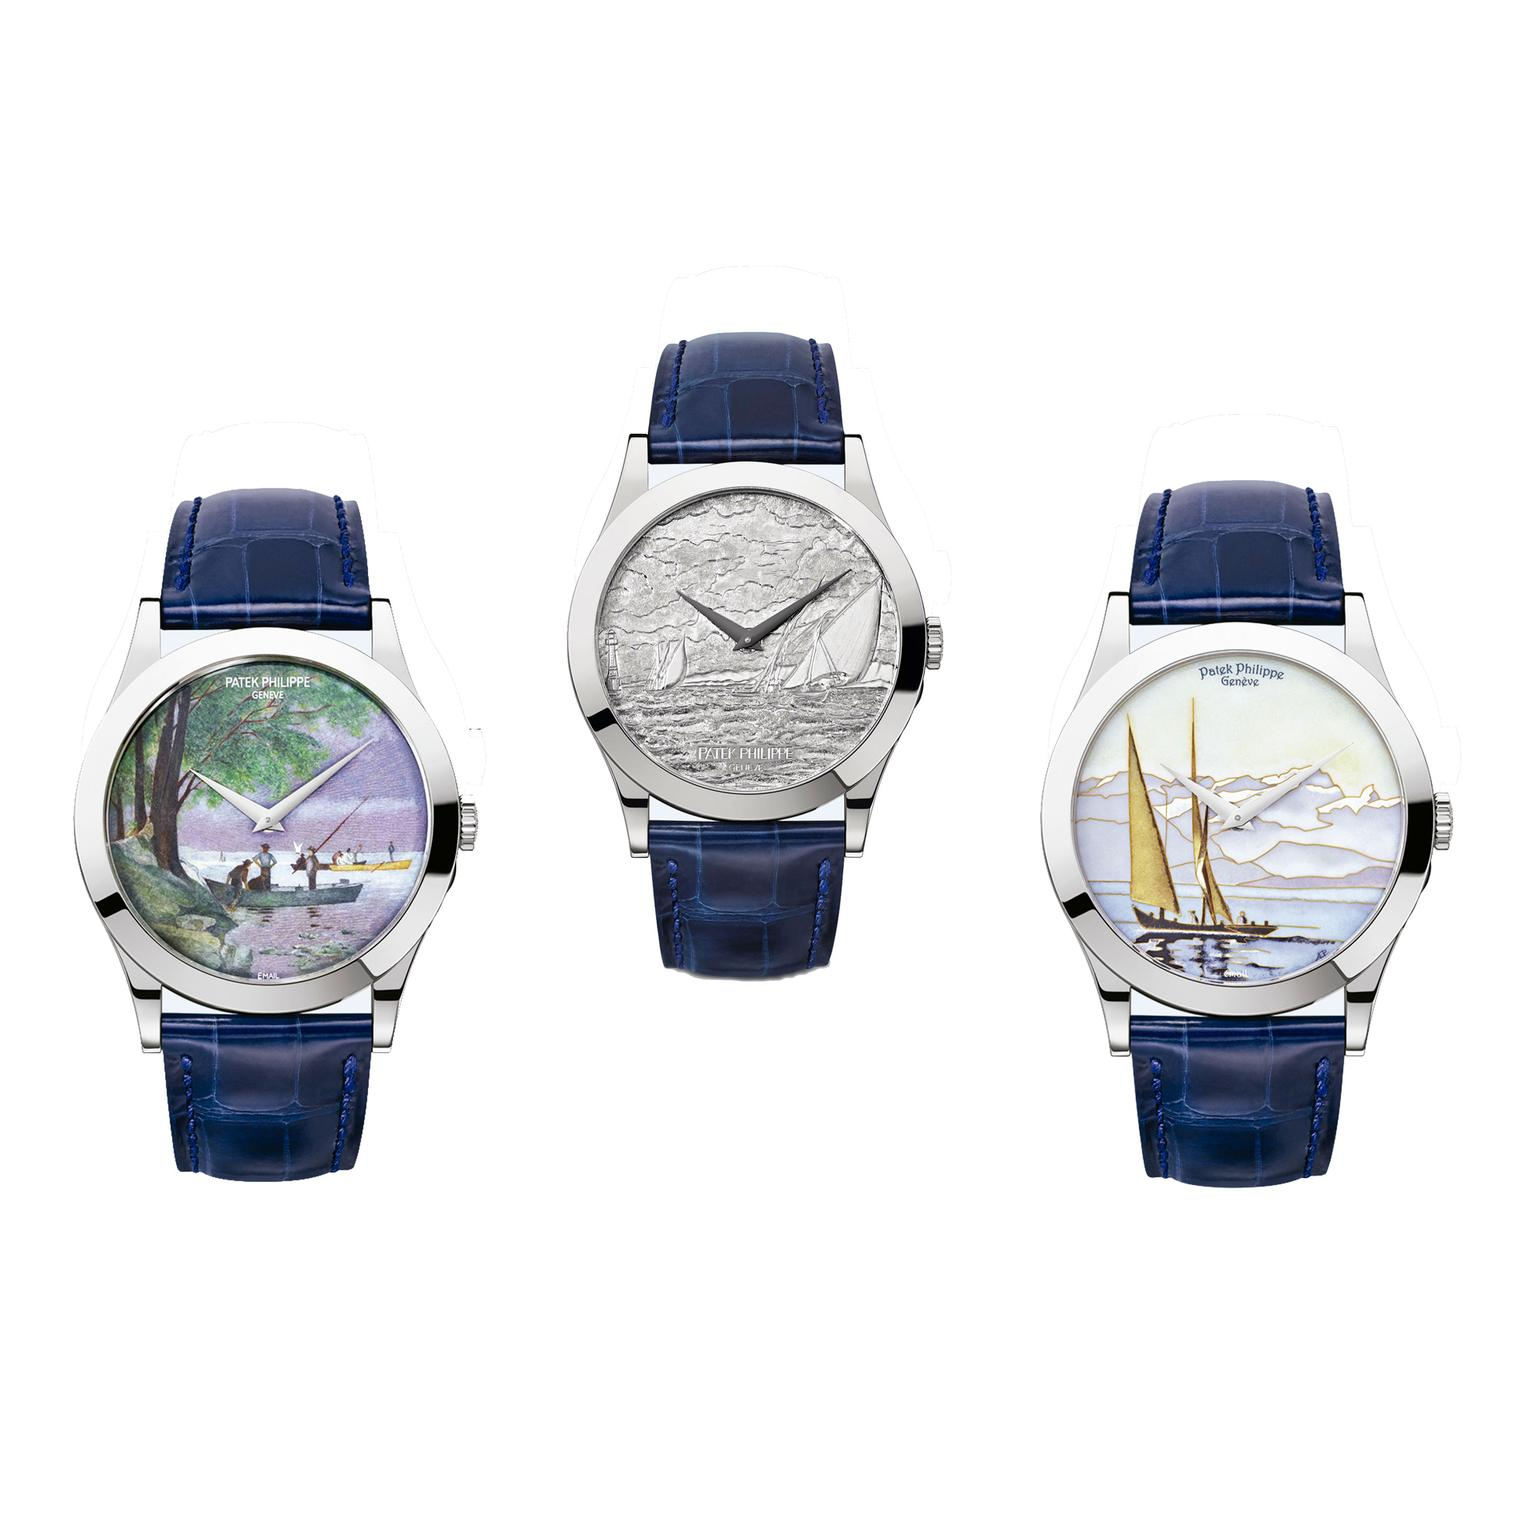 Patek Philippe Calatrava 175 Commemorative Collection watches